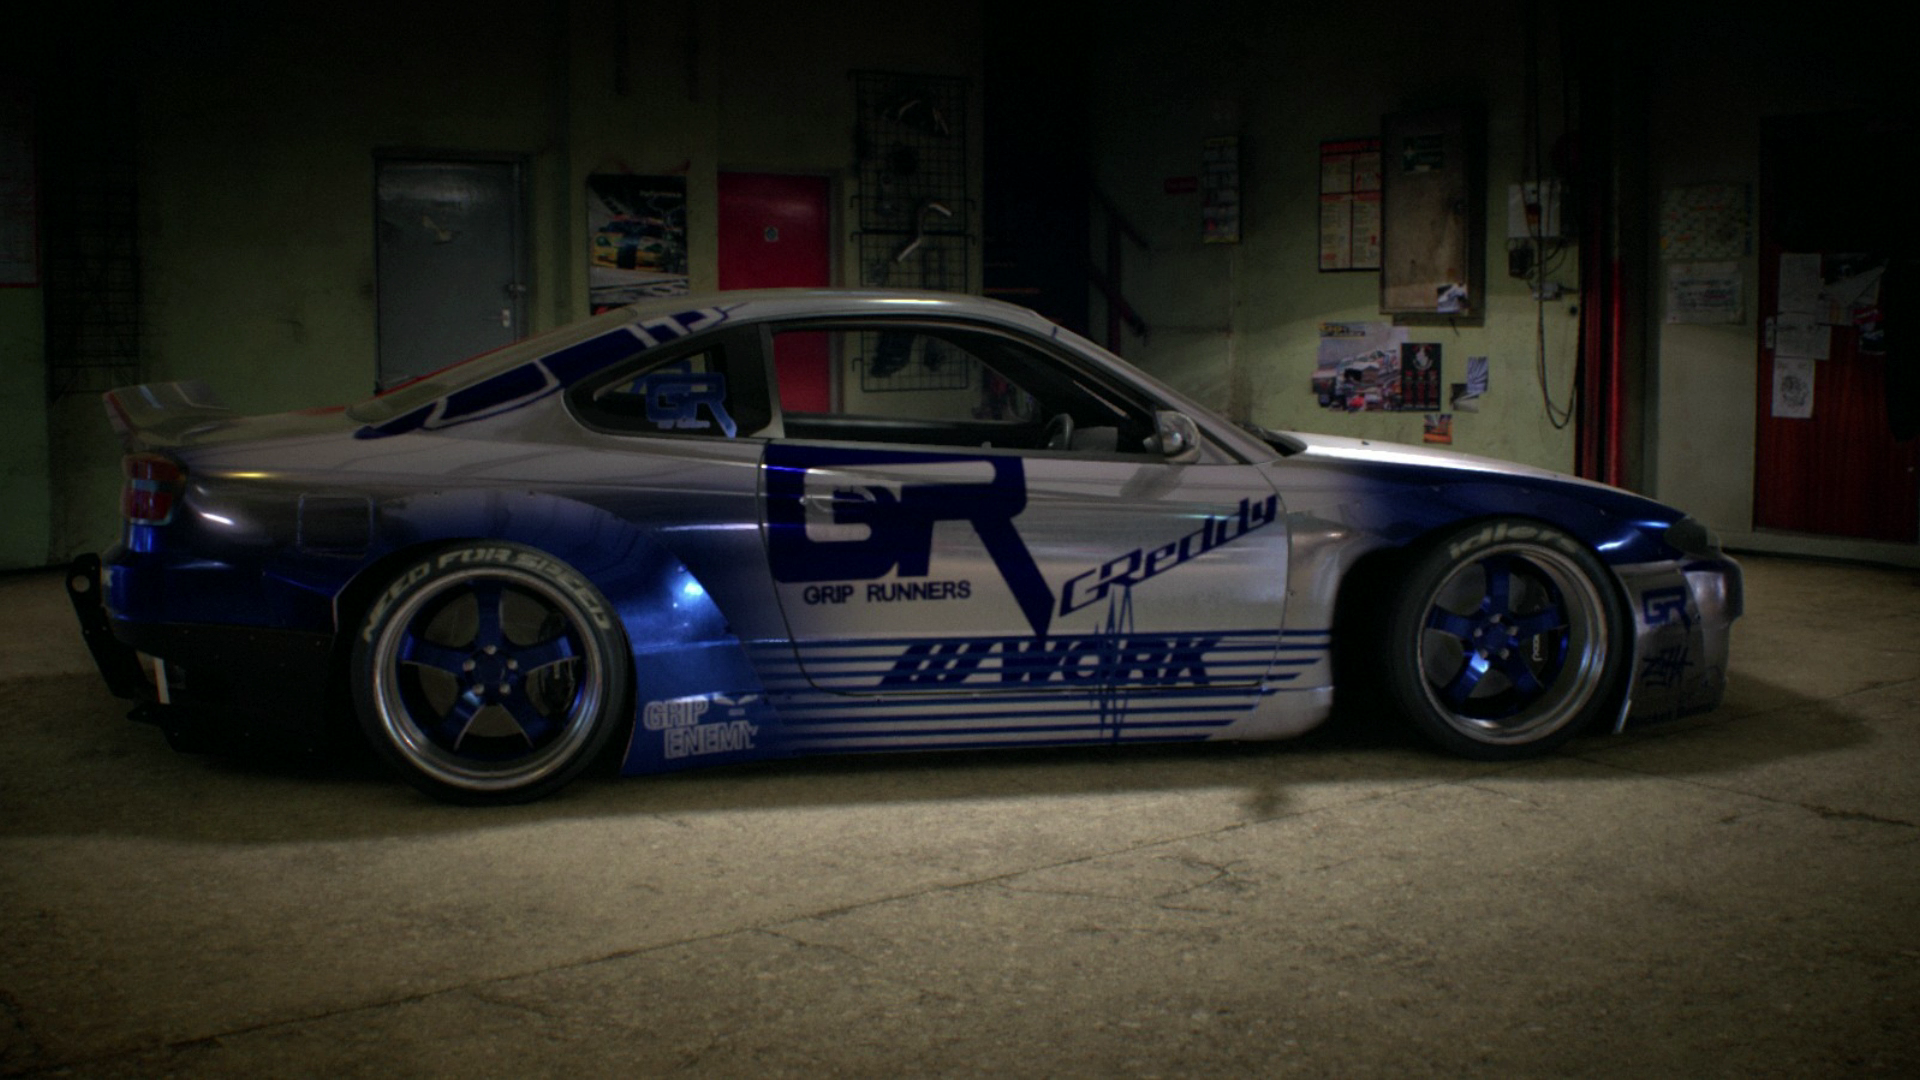 my favorite car need for speed 2015 nissan silvia widebody. Black Bedroom Furniture Sets. Home Design Ideas